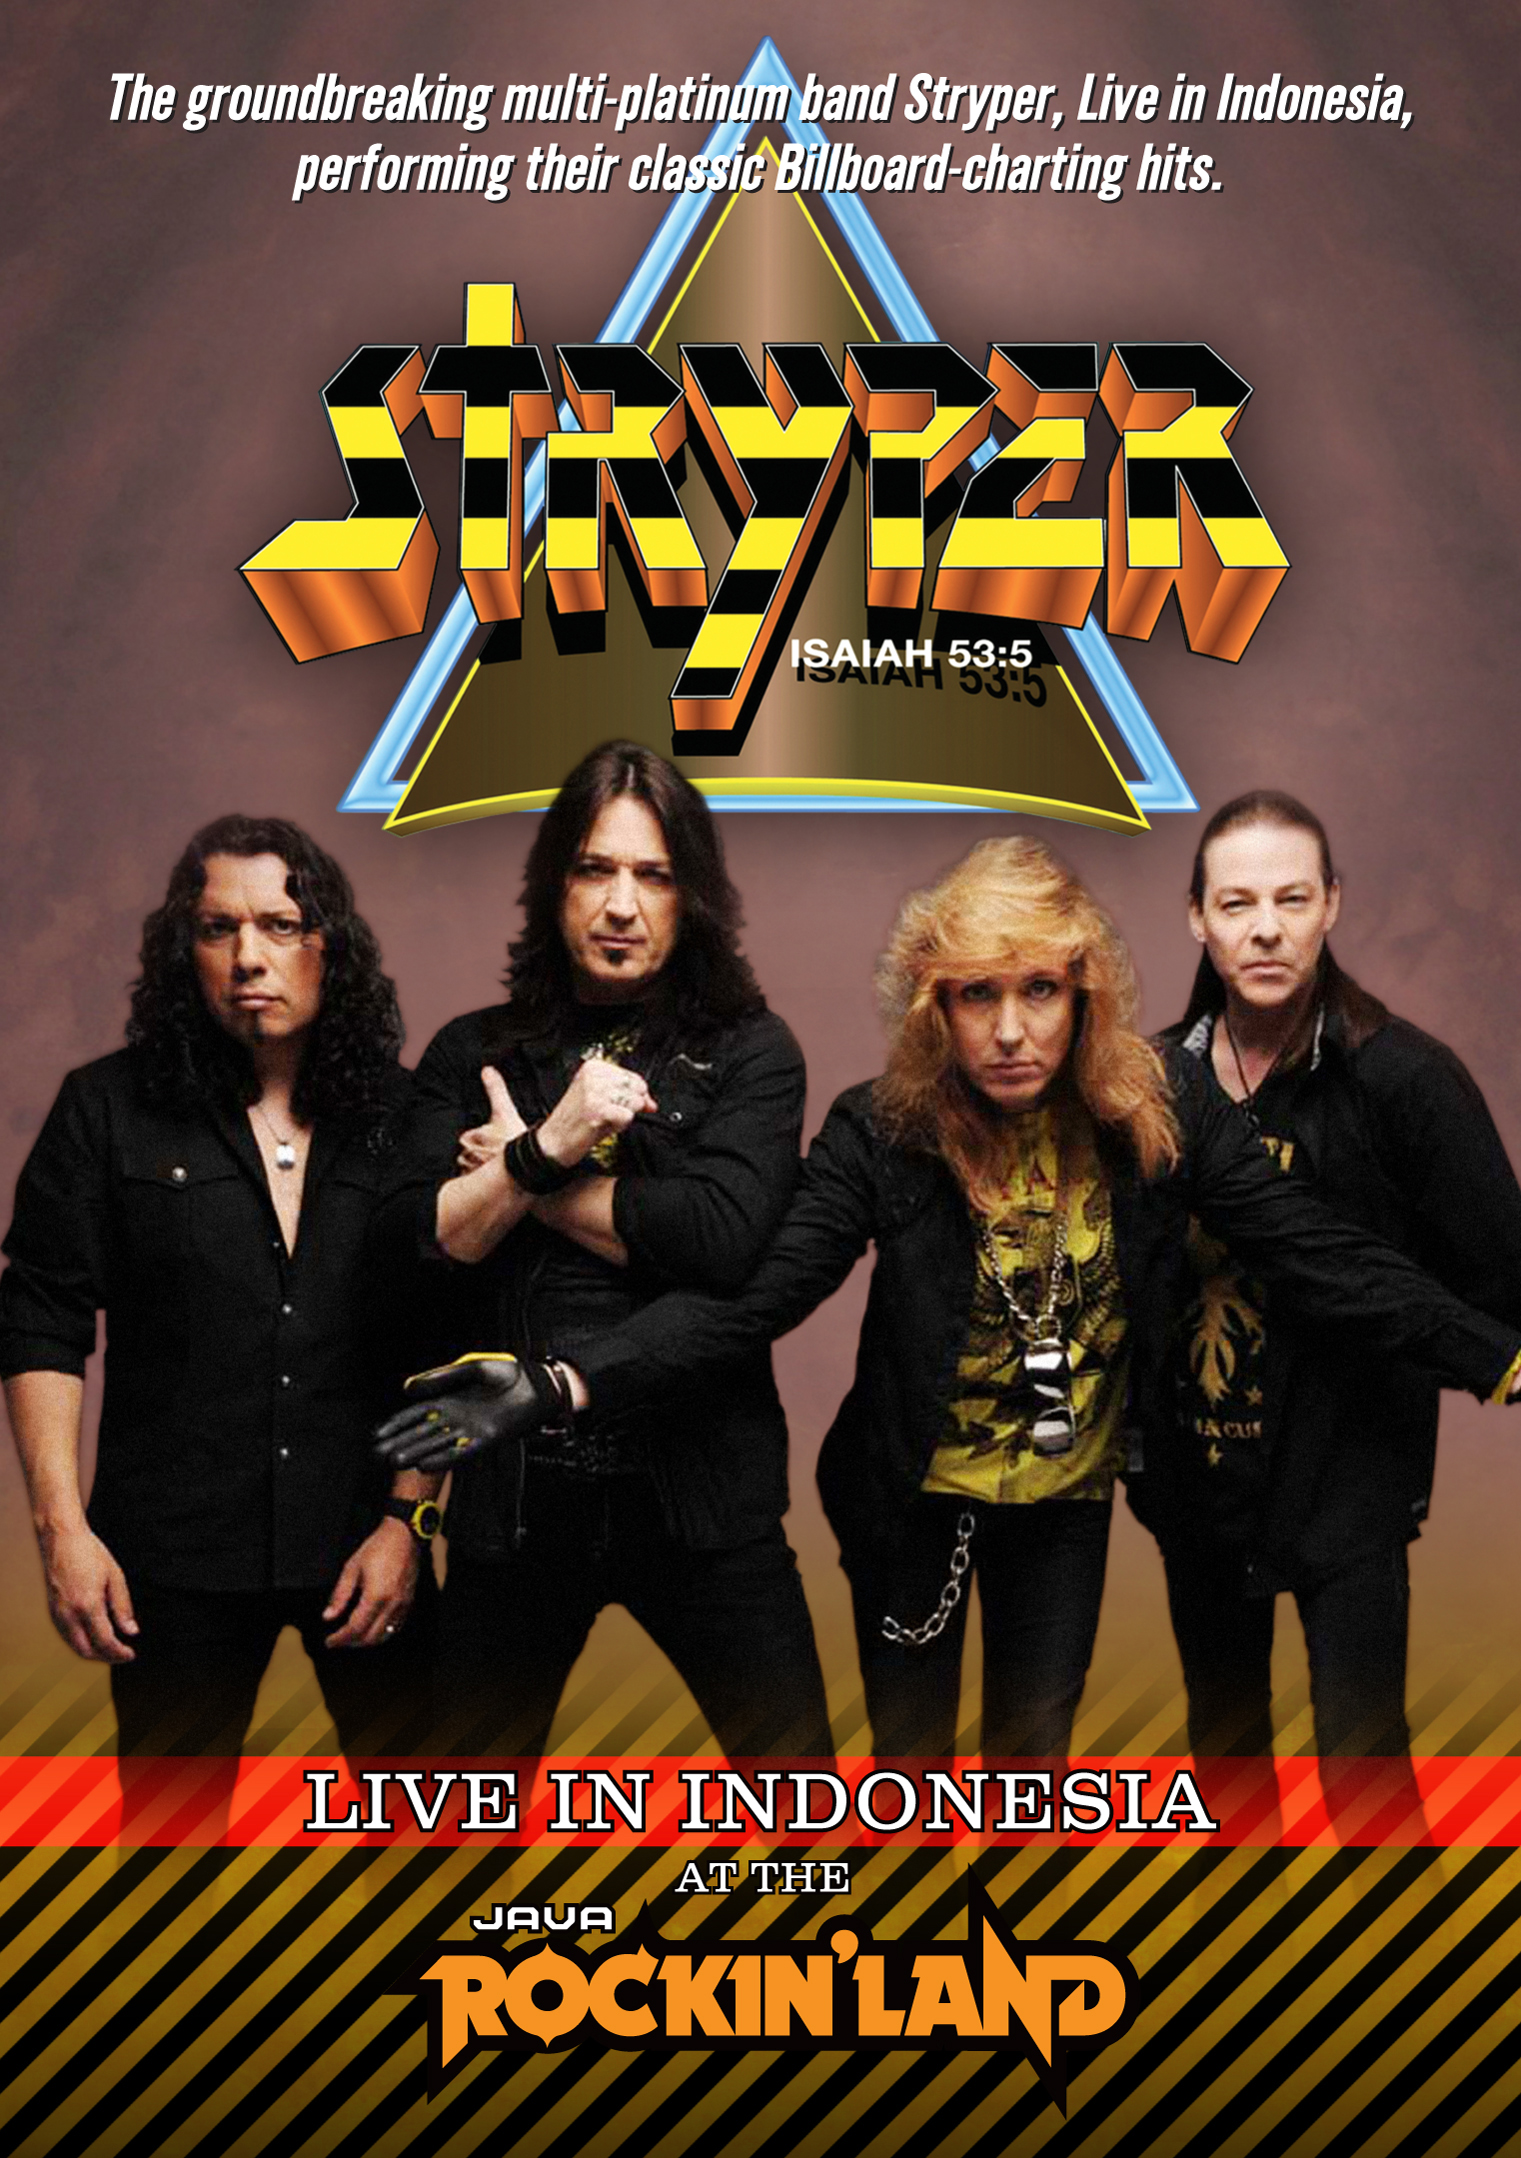 Stryper: Live in Indonesia at the Java Rockin' Land